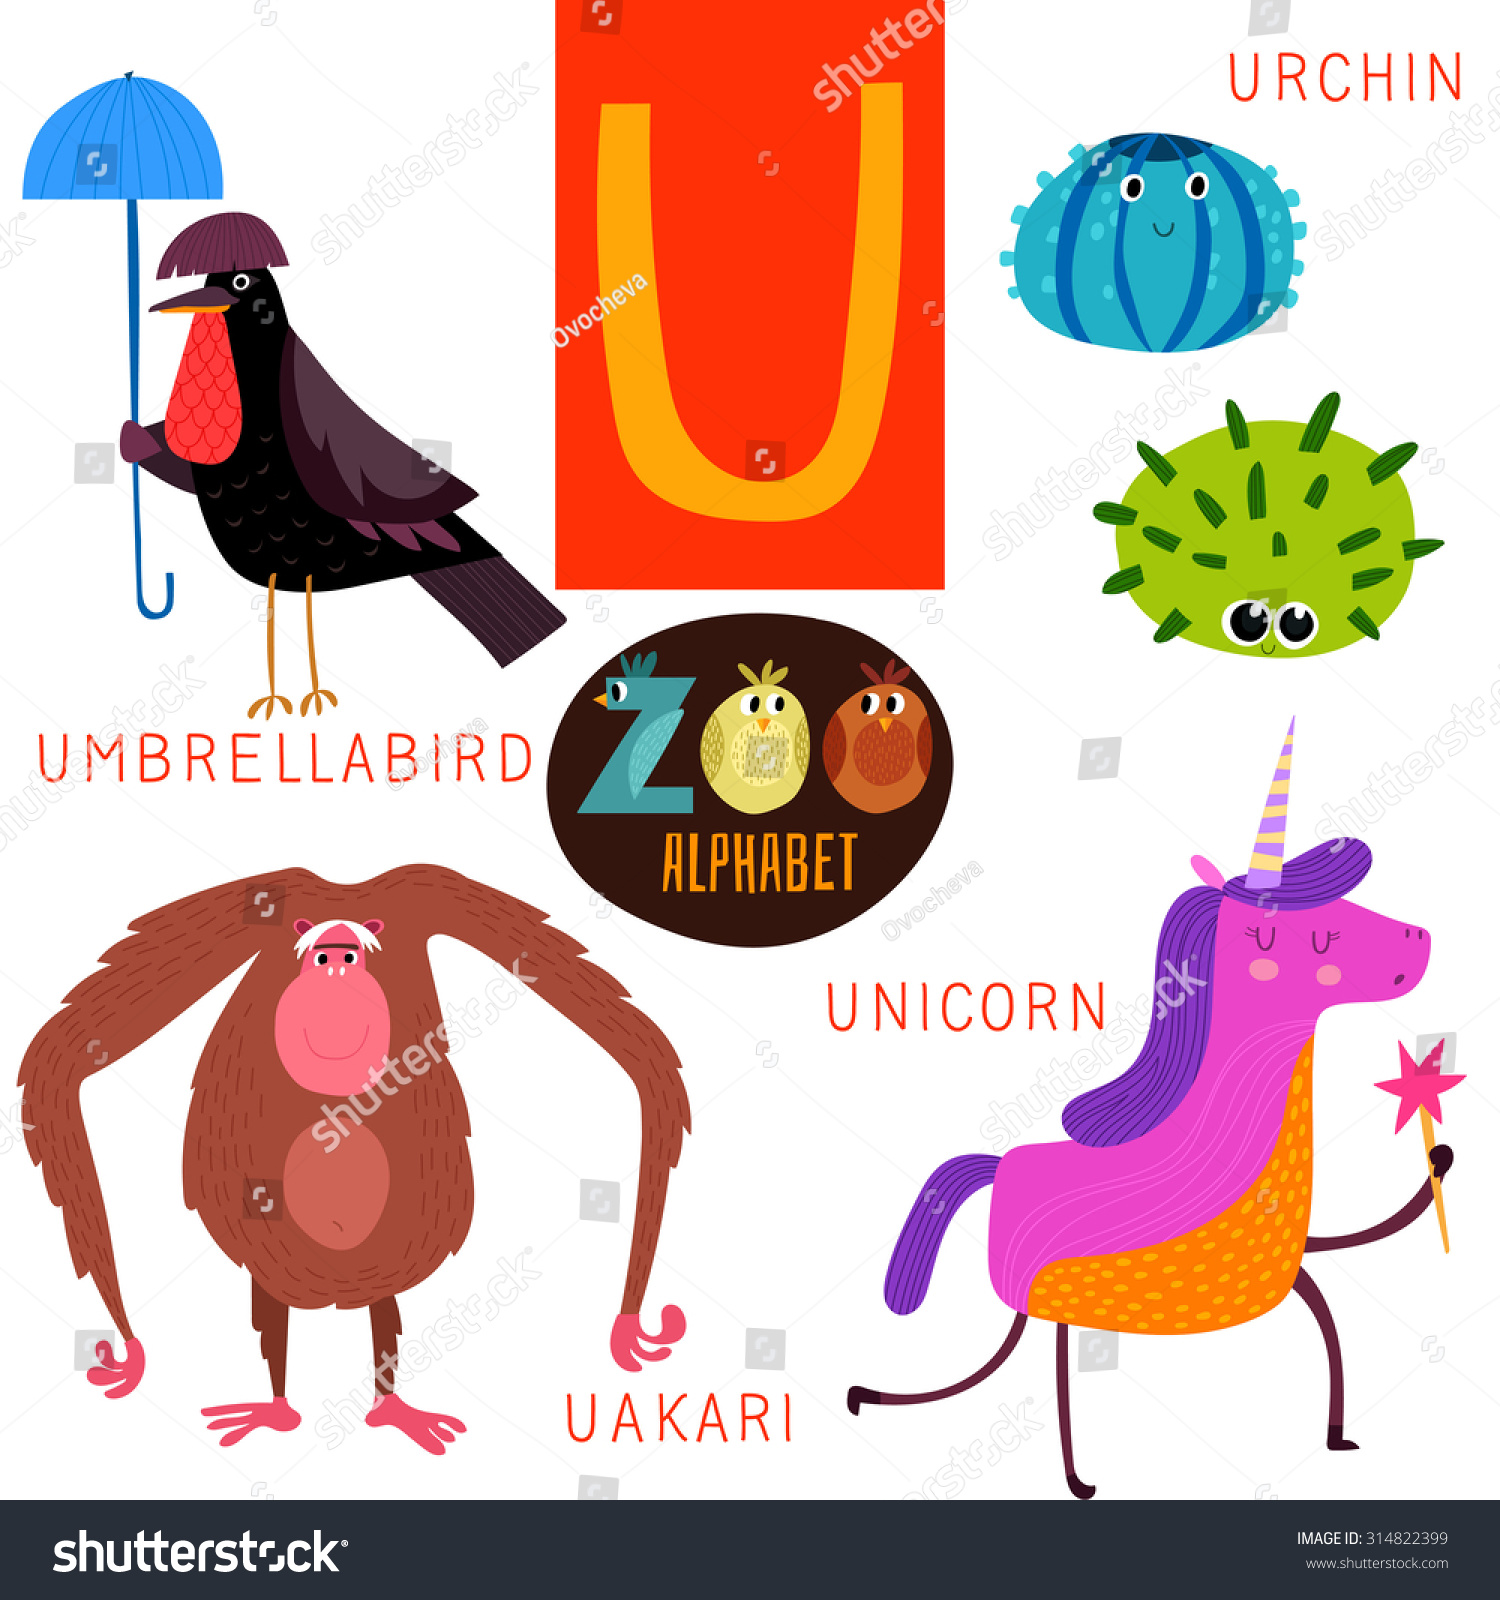 6827c77d Cute zoo alphabet in vector. U letter. Funny cartoon  animals:Umbrellabird,urchin,uakari,unicorn. Alphabet design in a colorful  style. Royalty Free ...